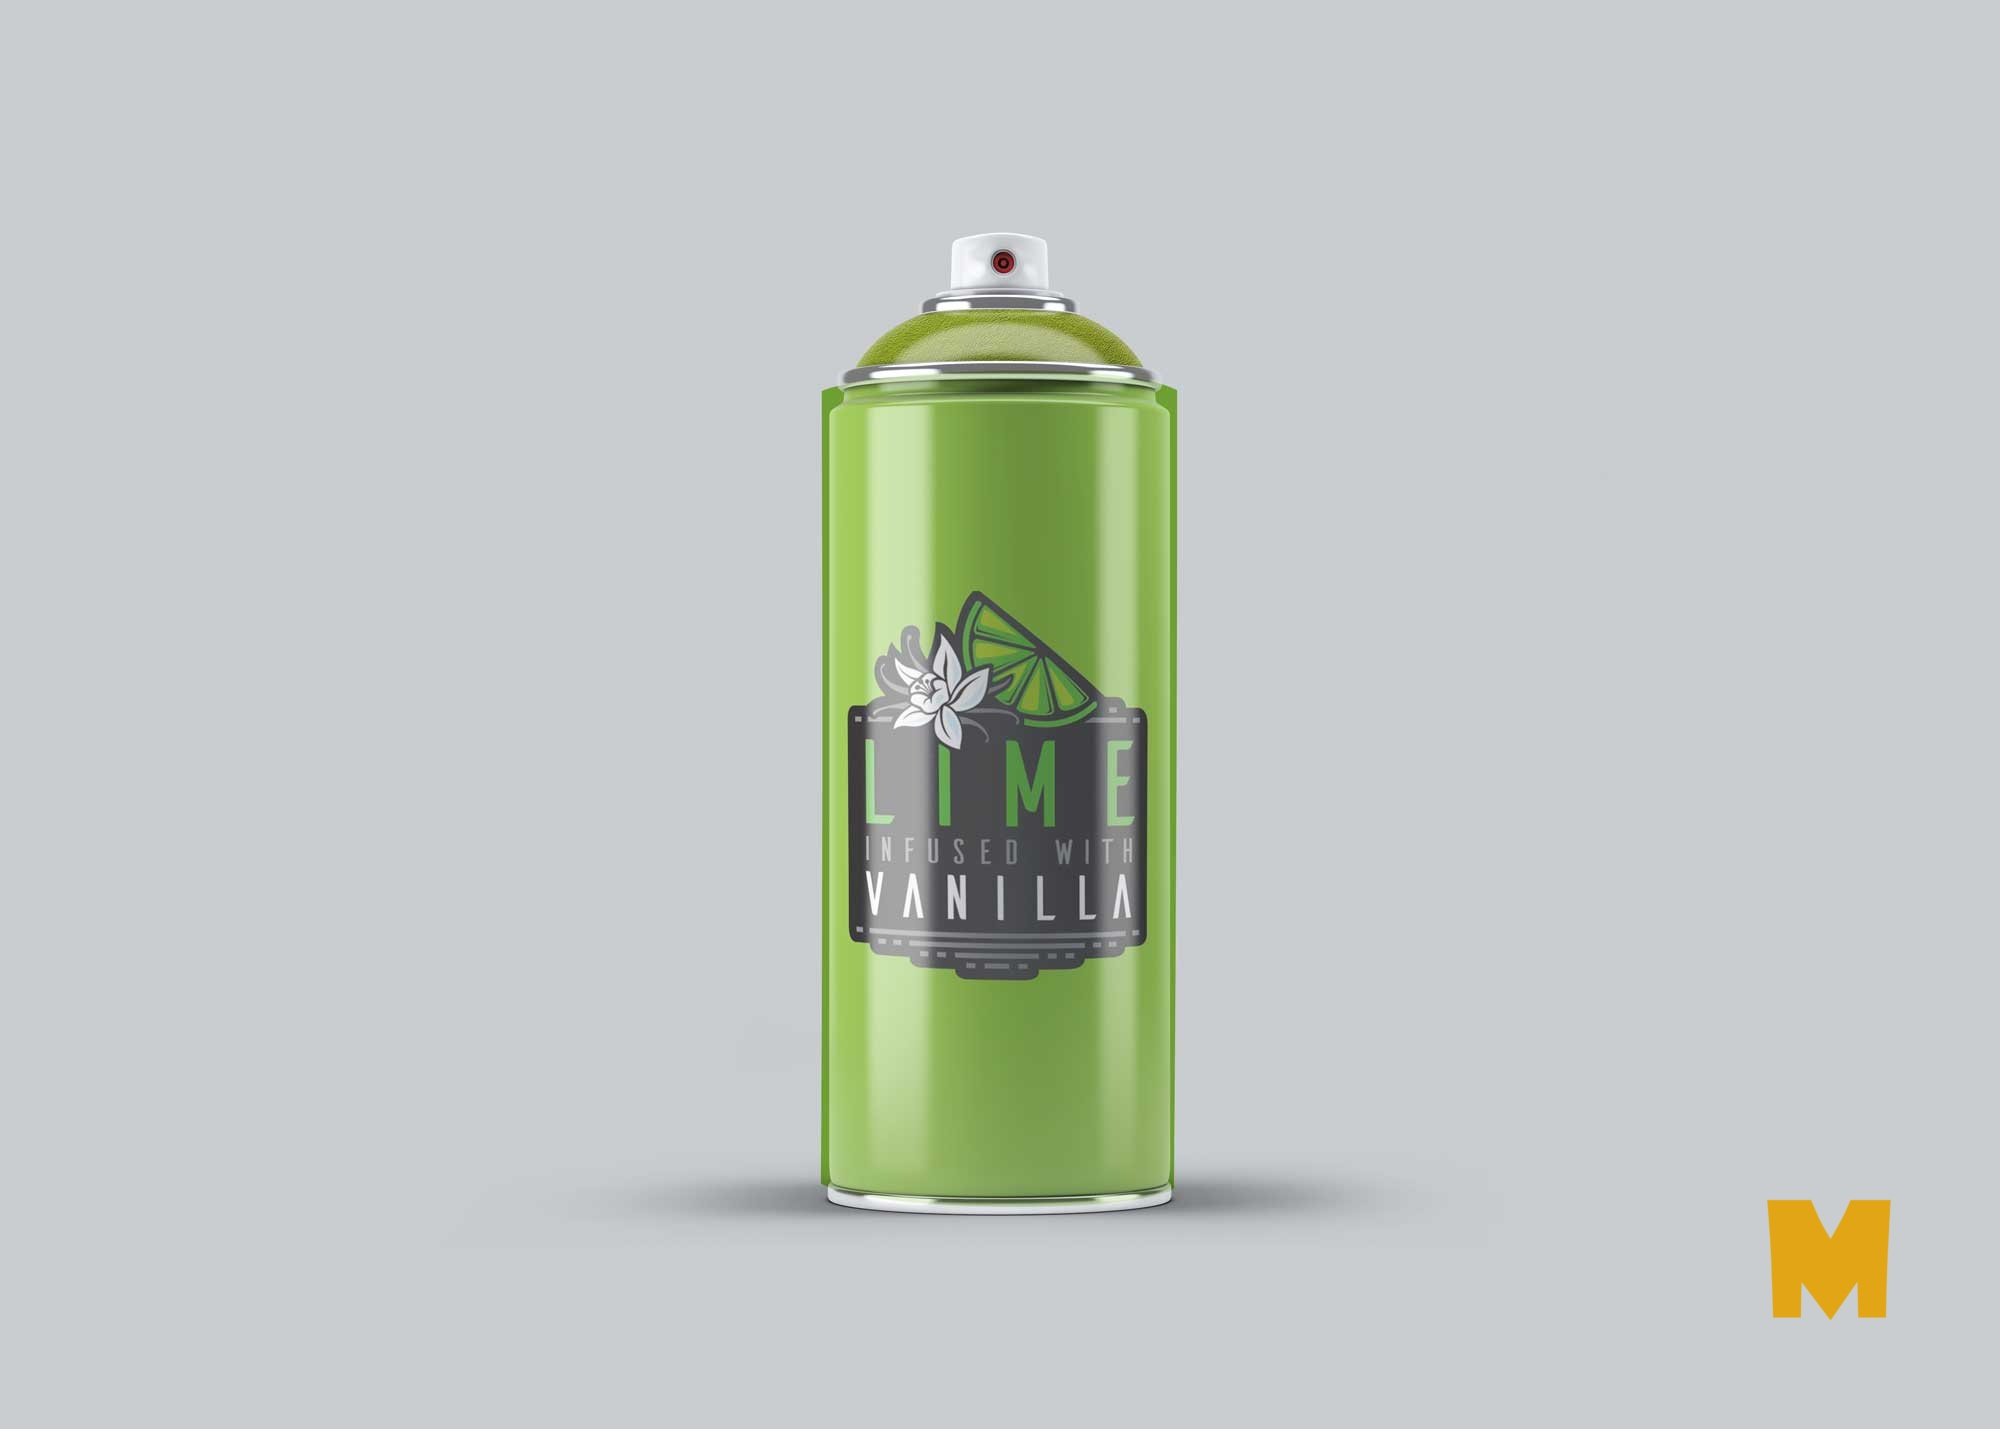 Free Green Paint Spray Bottle Mockup